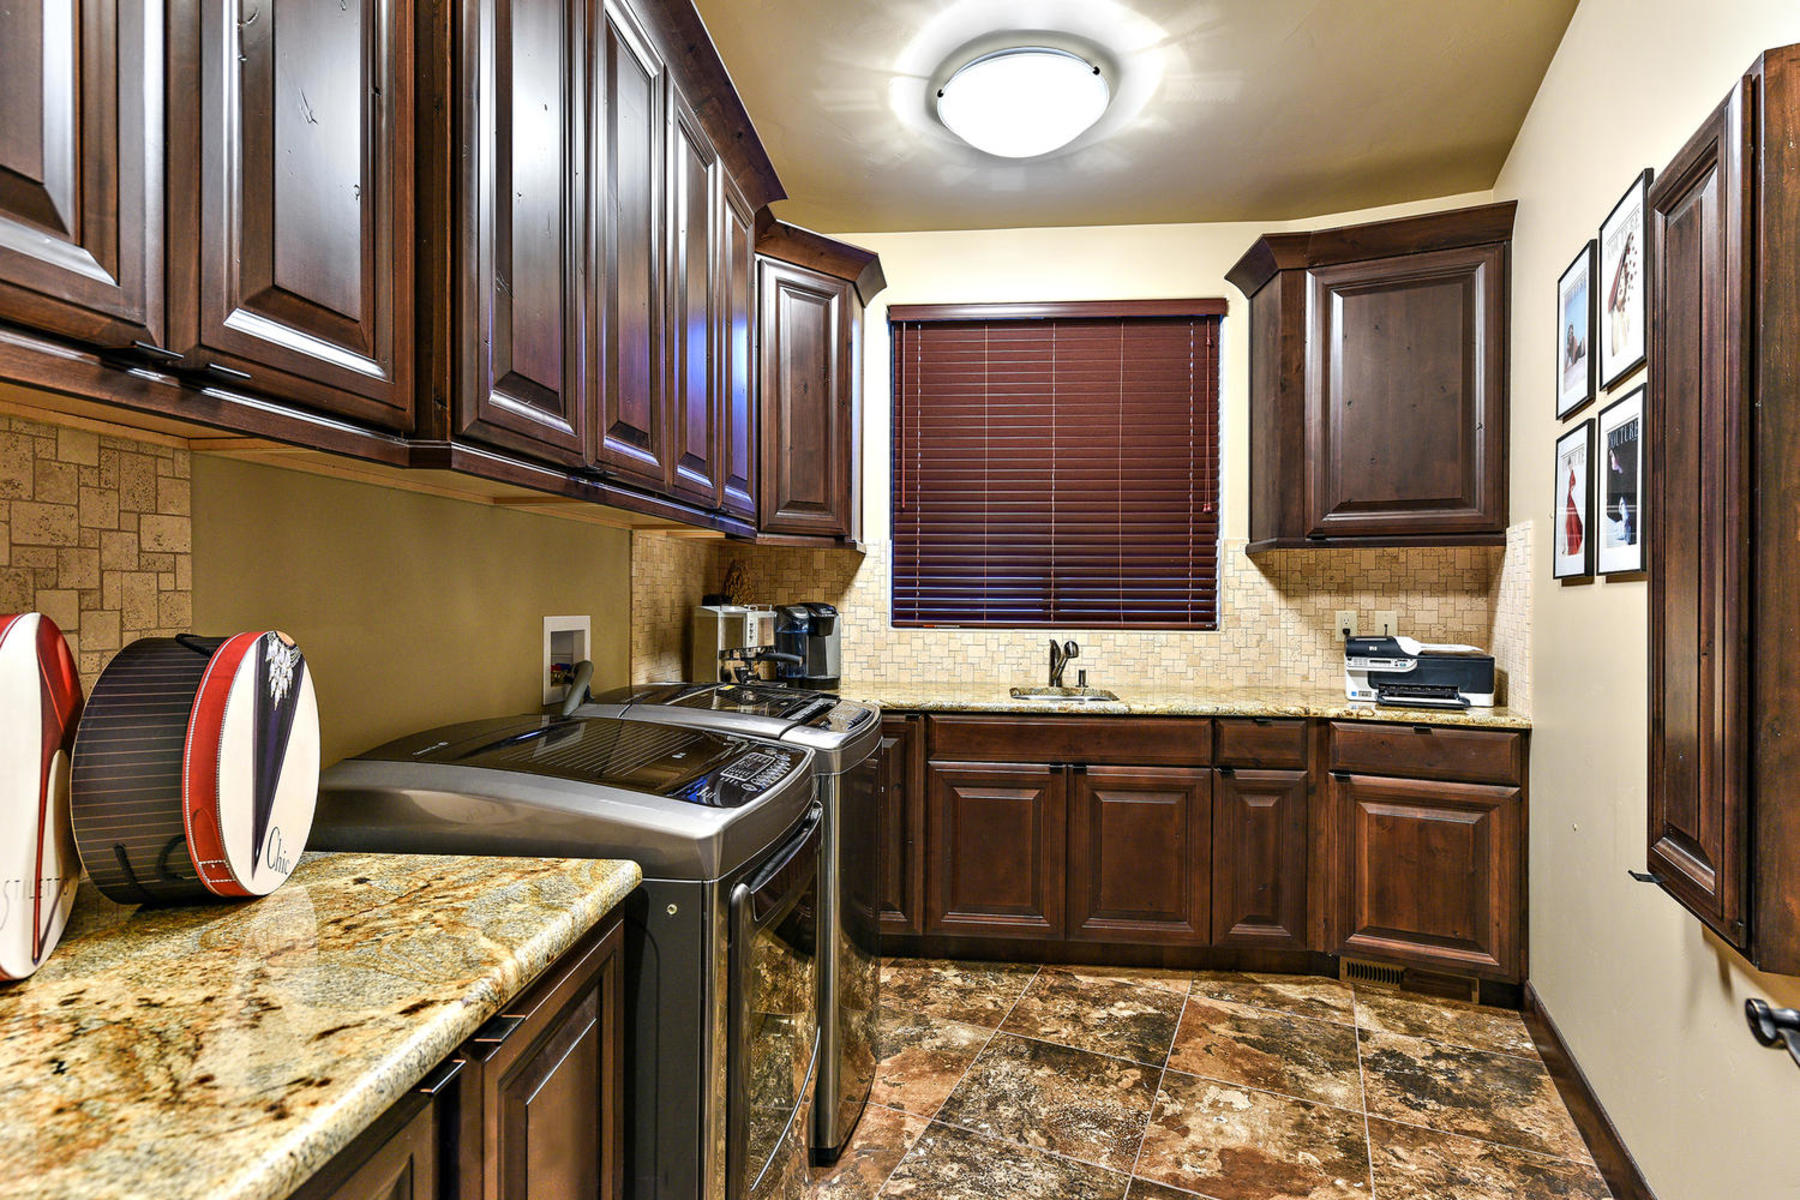 Additional photo for property listing at Kachina Springs Views & Waterfalls 2336 W Entrada Trail #25 St. George, Utah 84770 United States